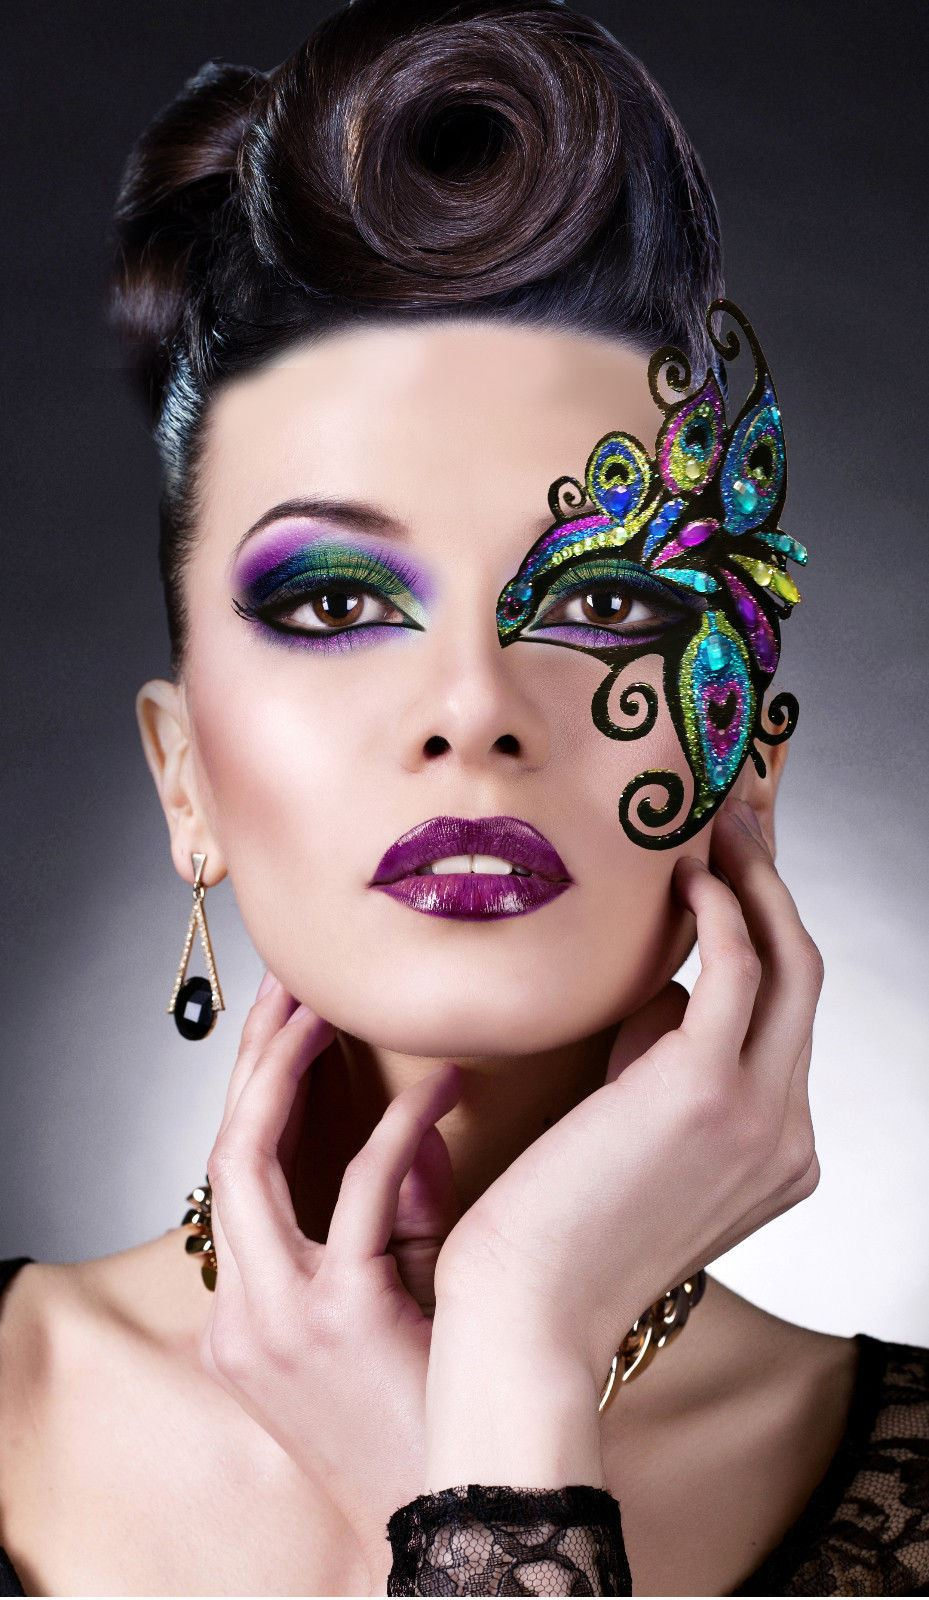 It's not a real Mardi Gras celebration without some gorgeous Mardi Gras makeup looks to get you inspired! Today, it's all about splashing some color and calling attention to your eyes! Mardi Gras is on February 28th and even if you aren't heading to New Orleans to partake in the festivities.